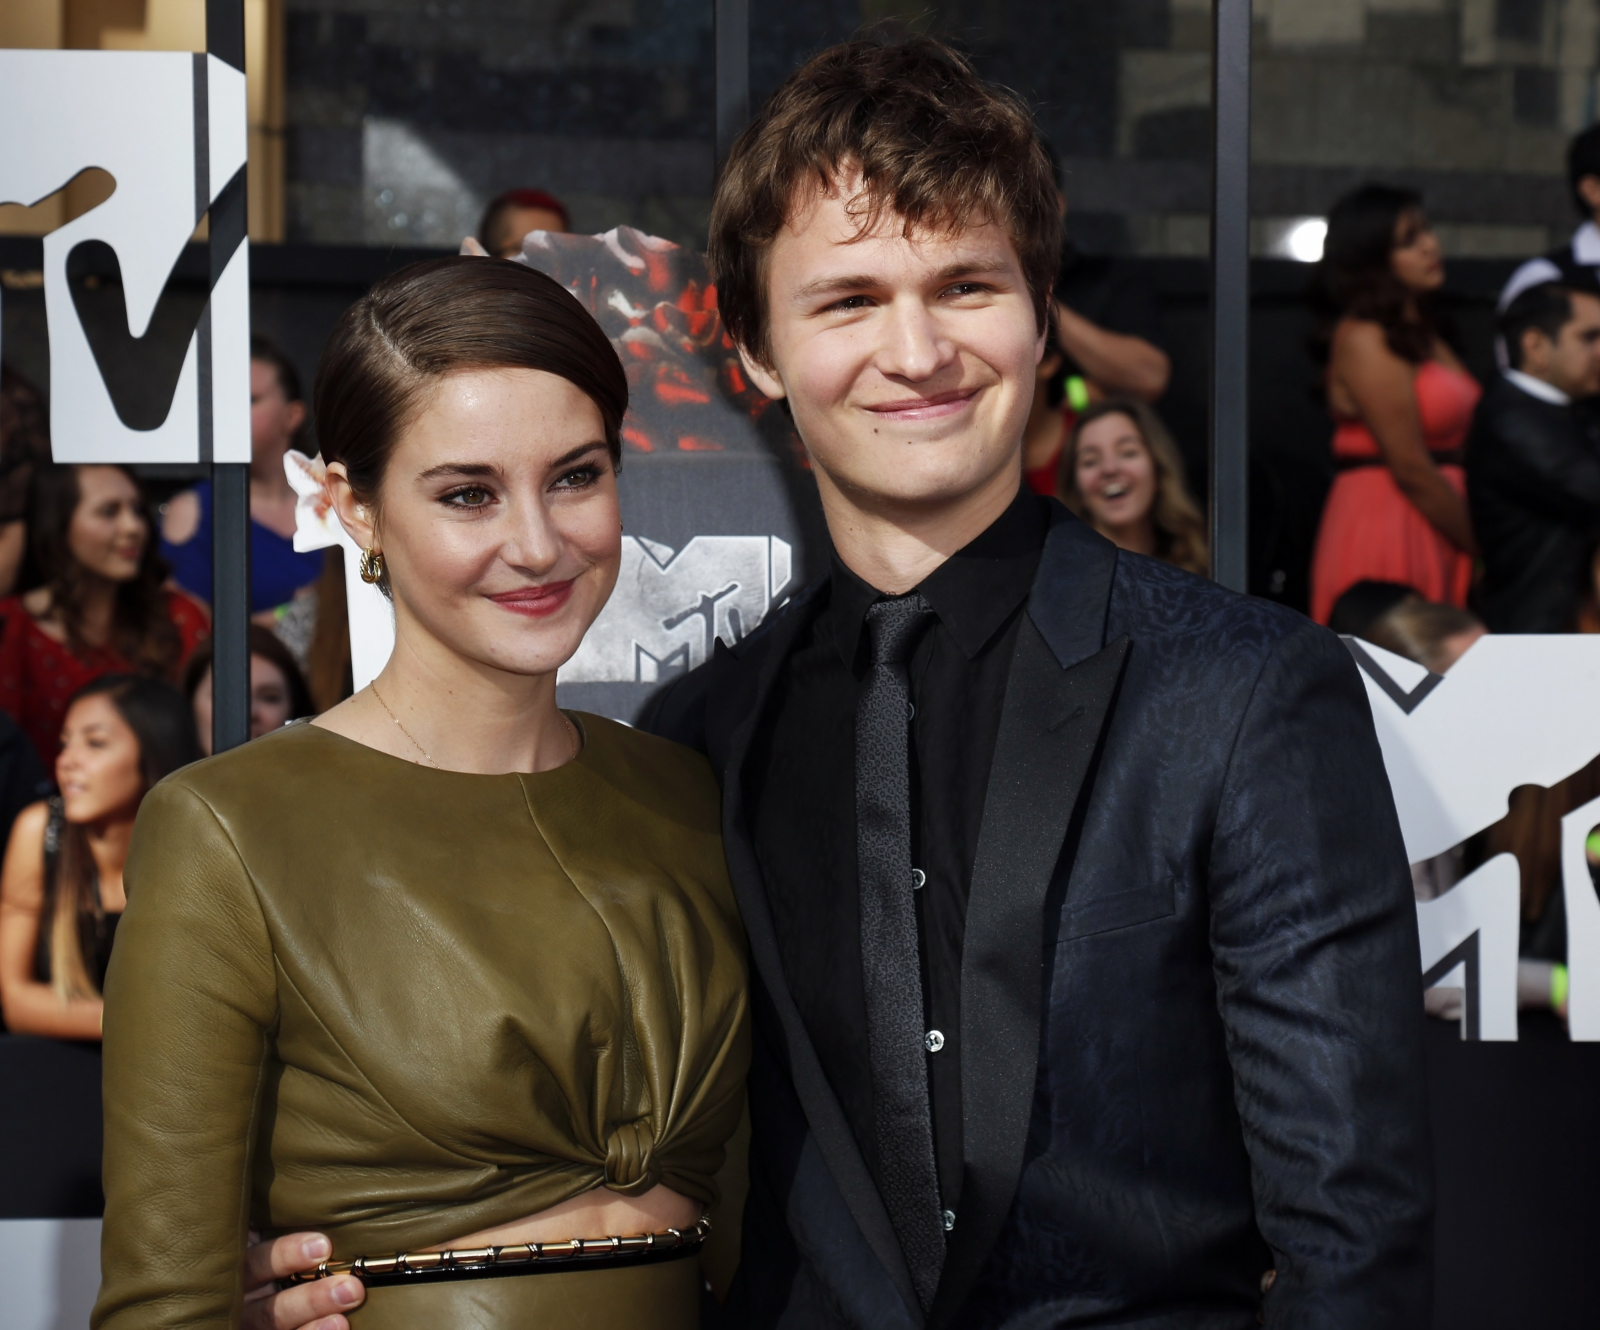 Ansel Elgort was rumoured to be dating Shailene Woodley.